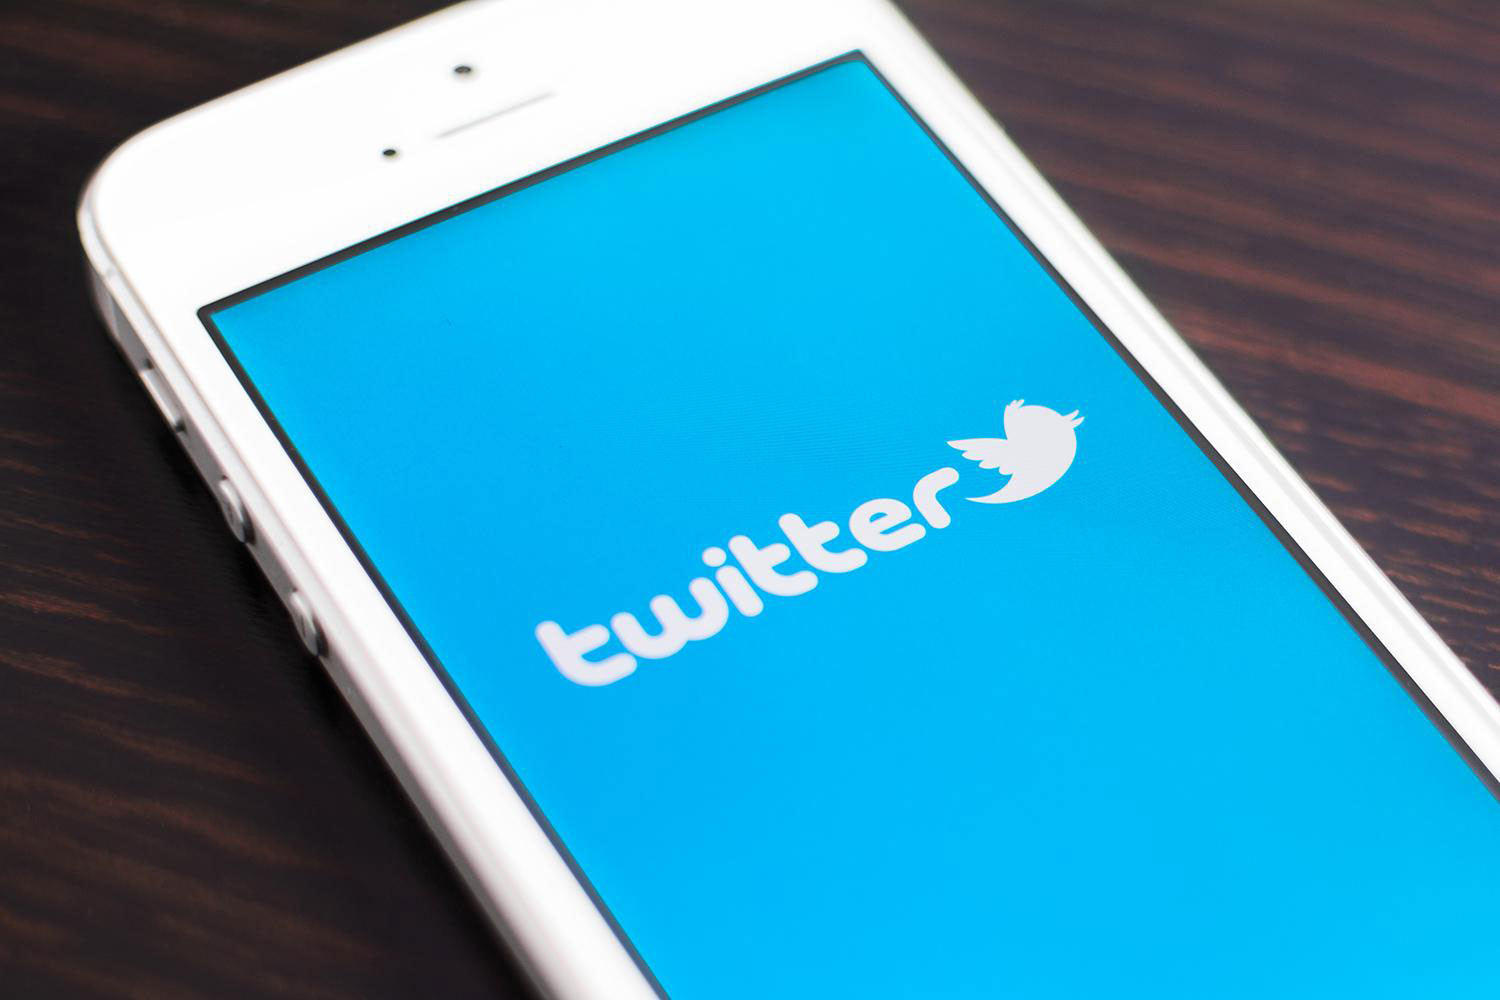 Your Android might be controlled by a malicious Twitter account